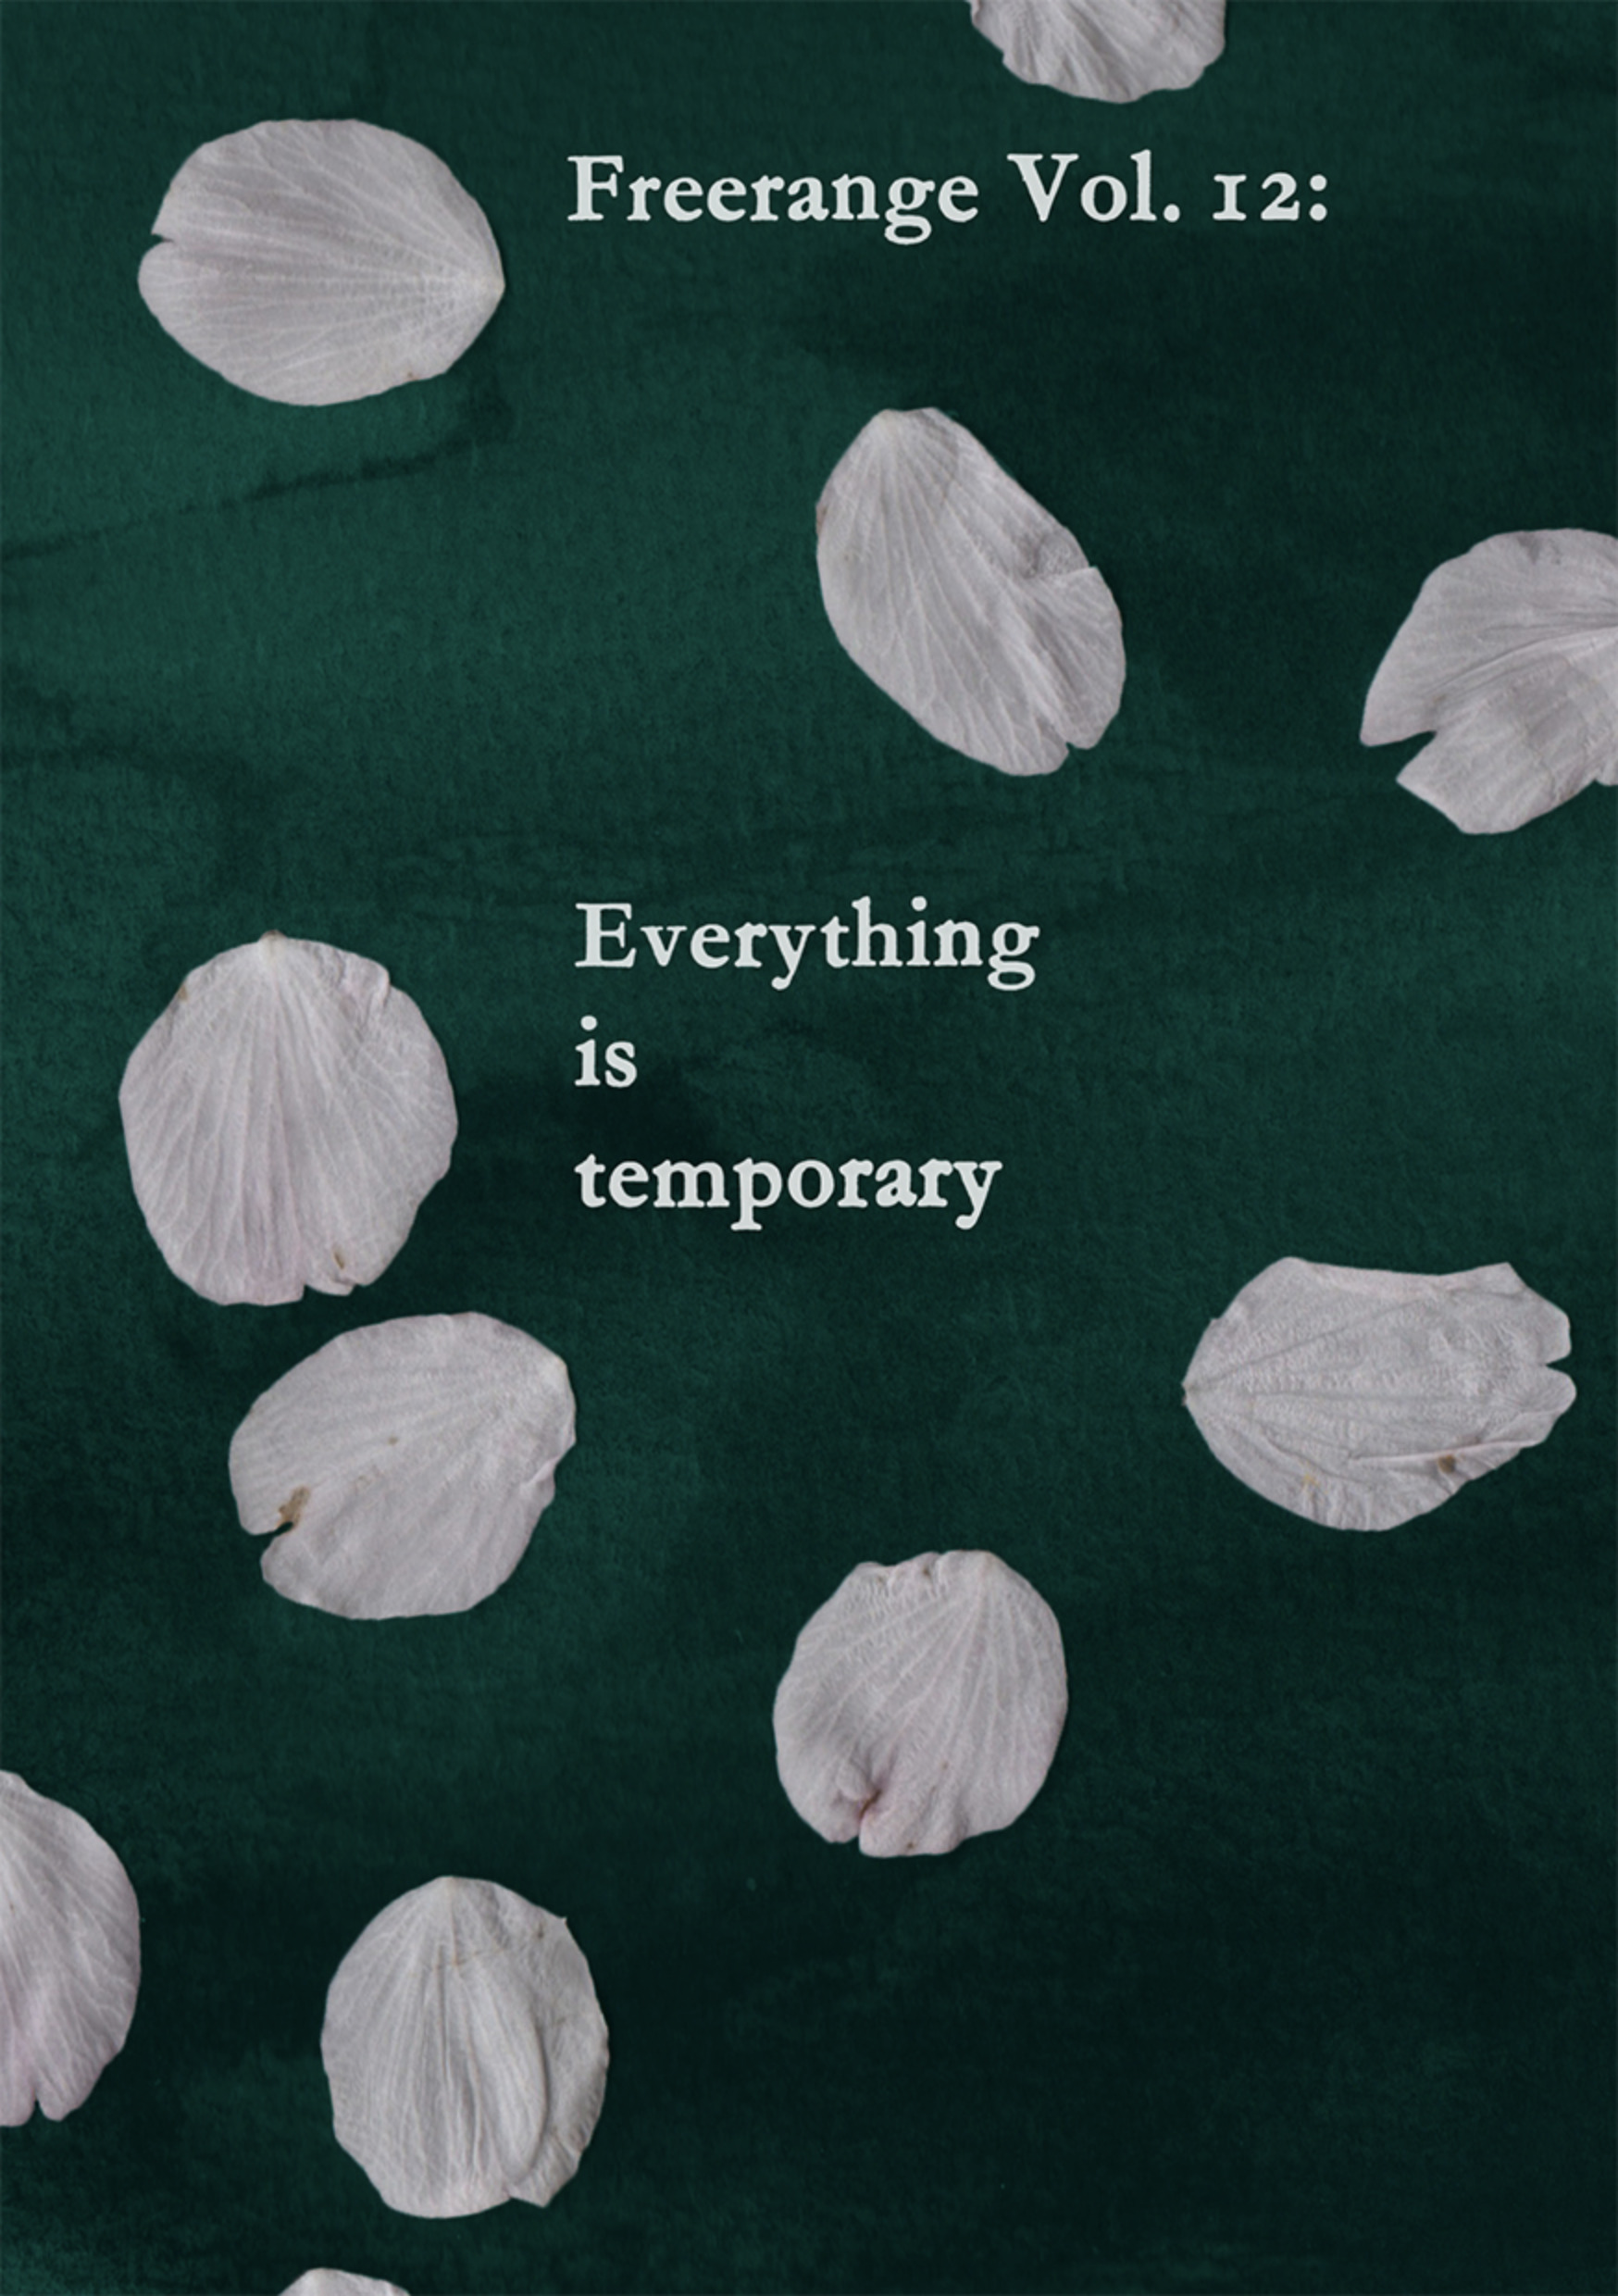 Freerange Vol.12: Everything is temporary